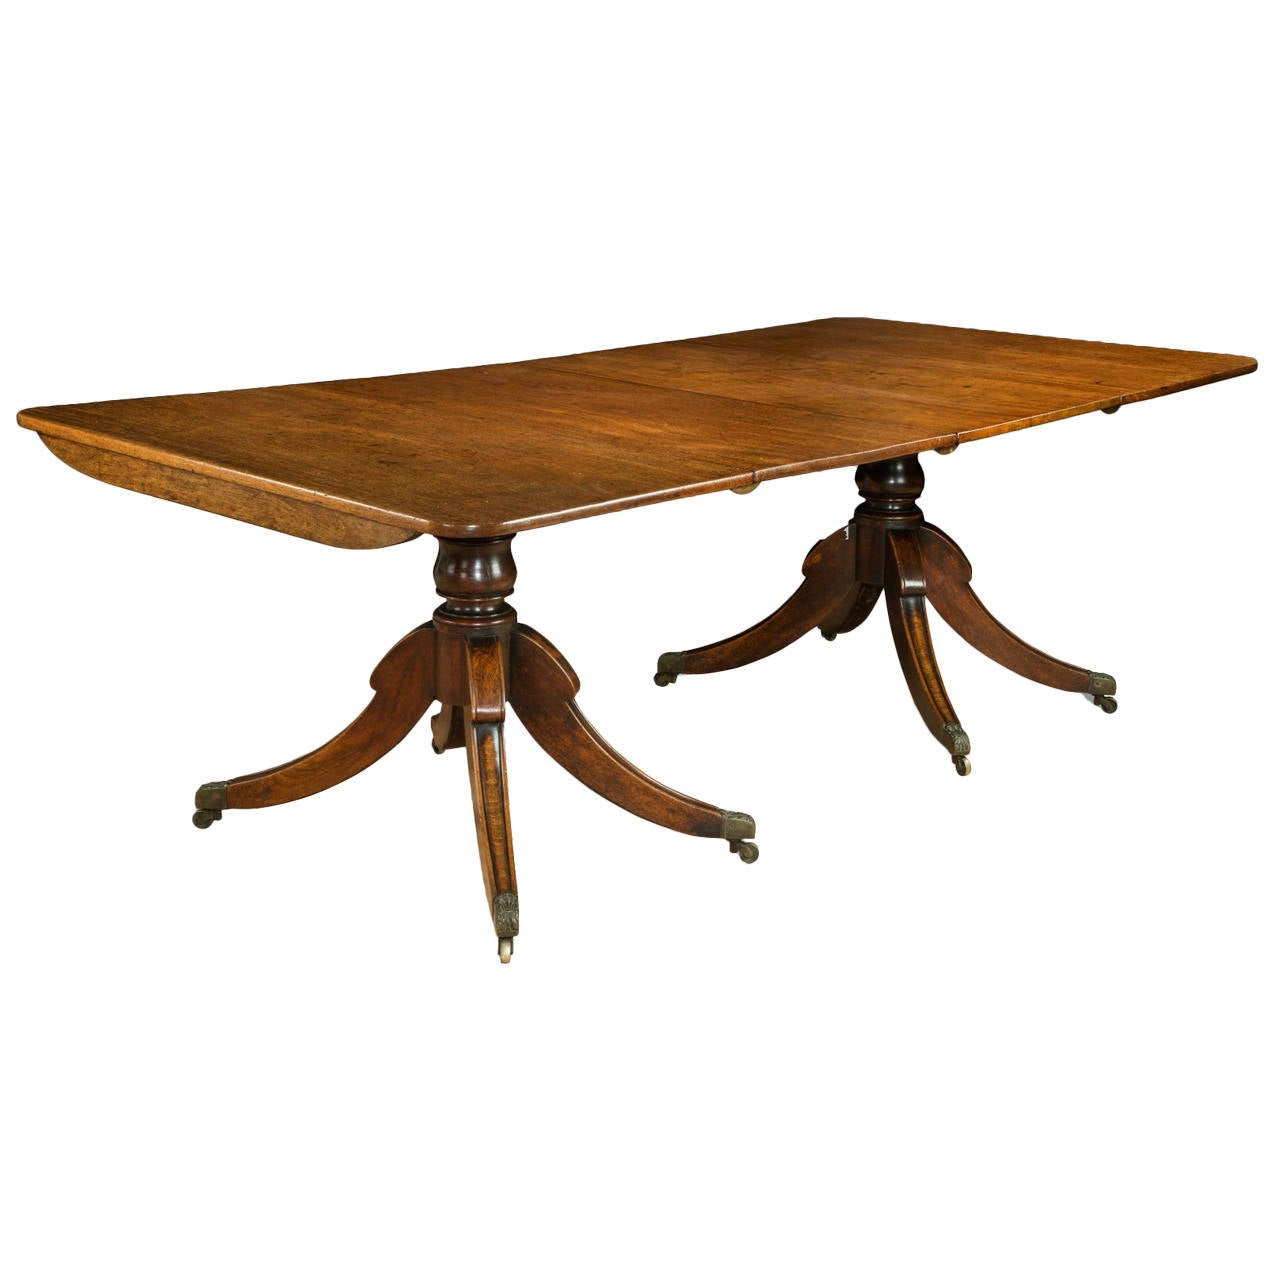 regency two pillar dining table at 1stdibs